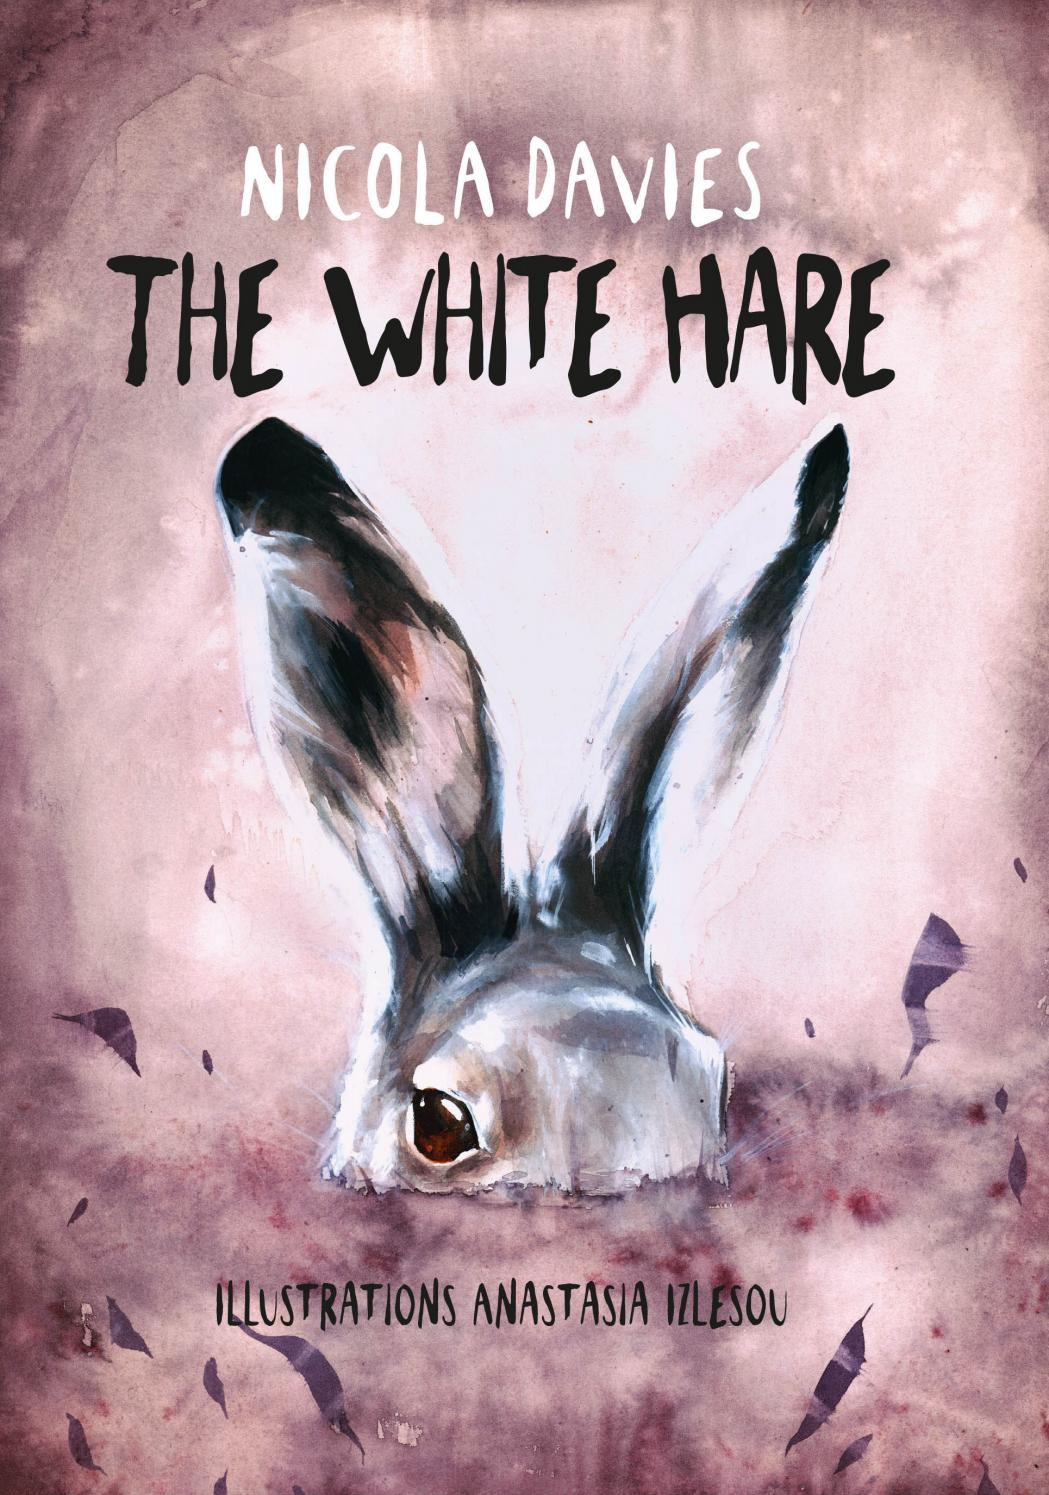 Image result for the white hare nicola davies